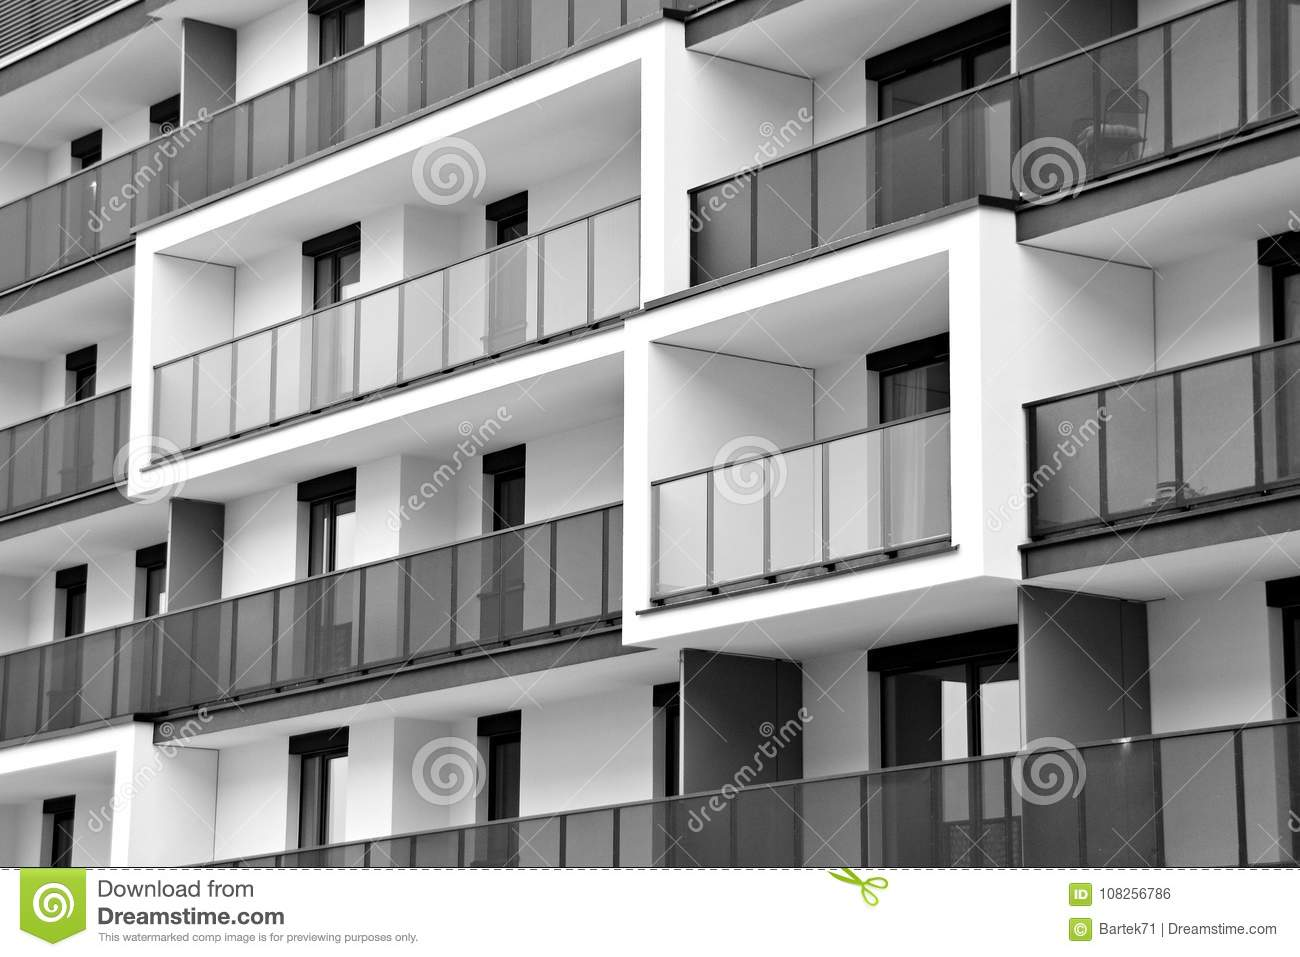 Download Modern Apartment Buildings. Facade Of A Modern Apartment Building.  Black And White.